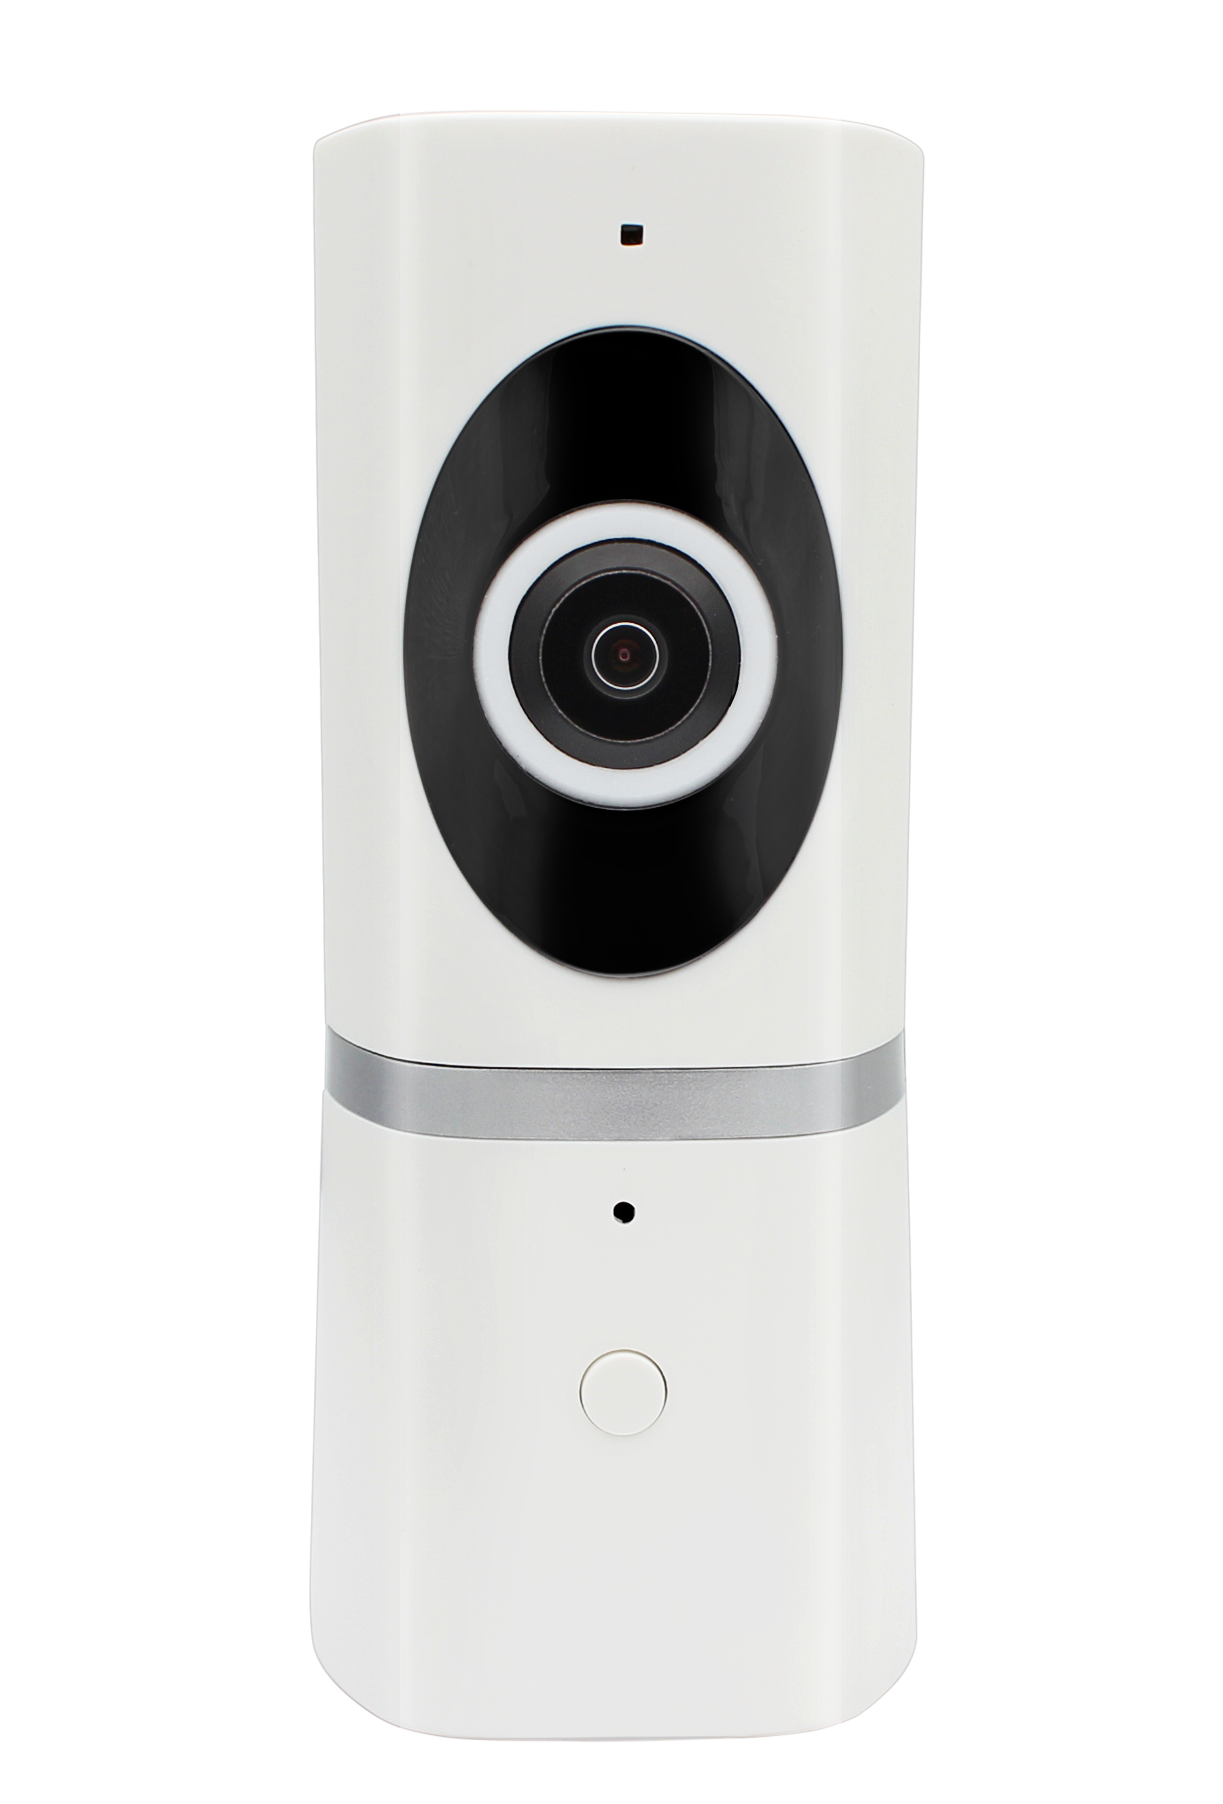 Wholesale IP Camera - HD 720P, WiFi, 180 Degree Panoramic, H.264 Compression, Two Way Talk, IR, Motion Detection